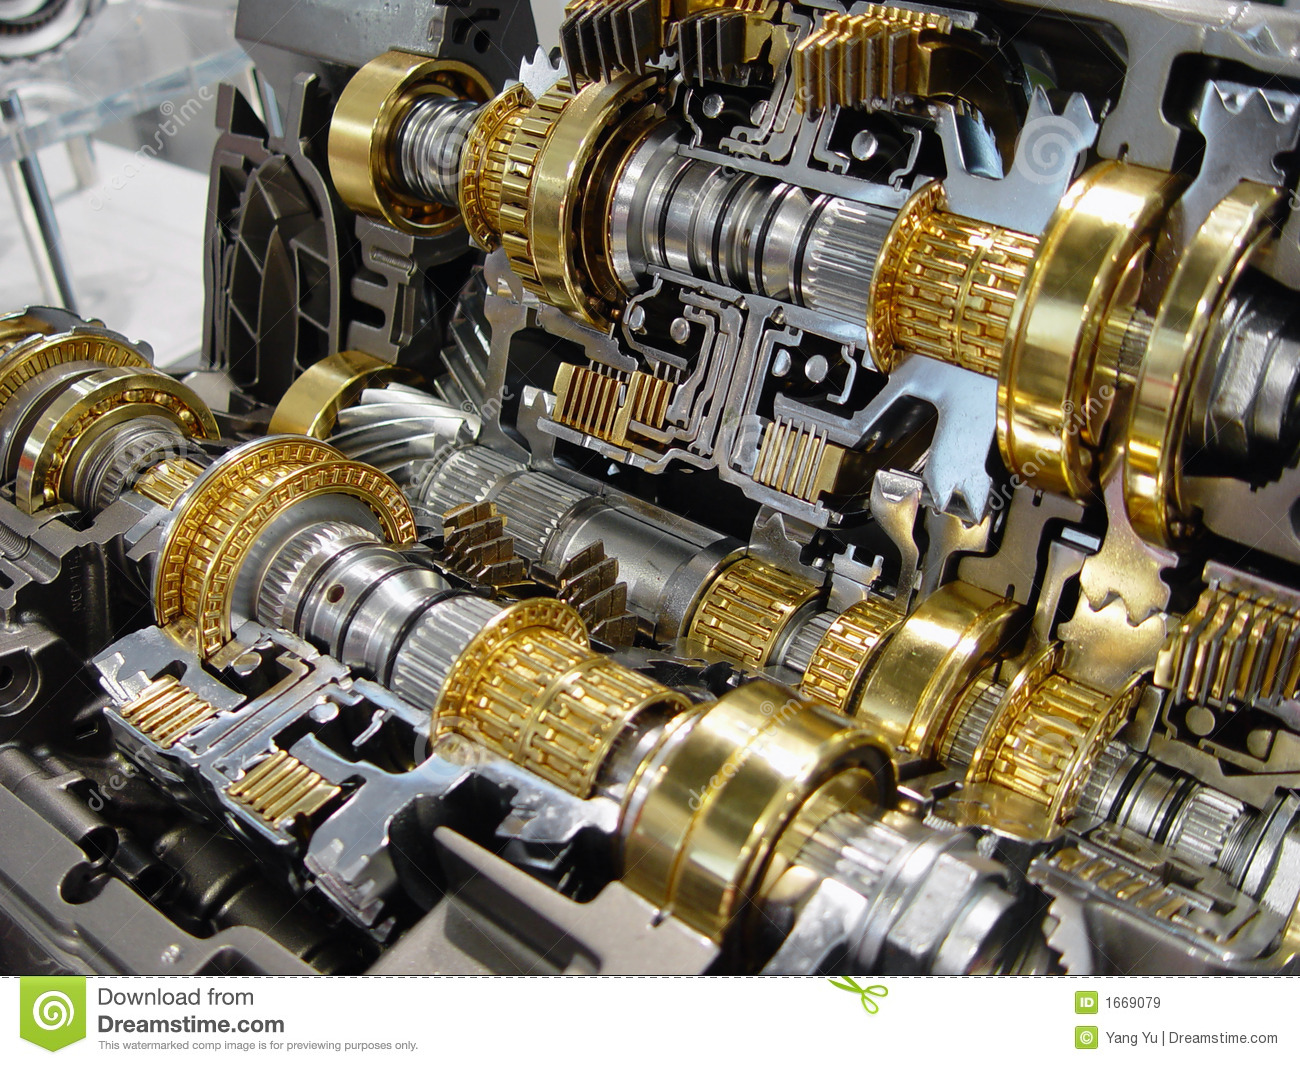 Gear Box Gear : Gear box royalty free stock images image